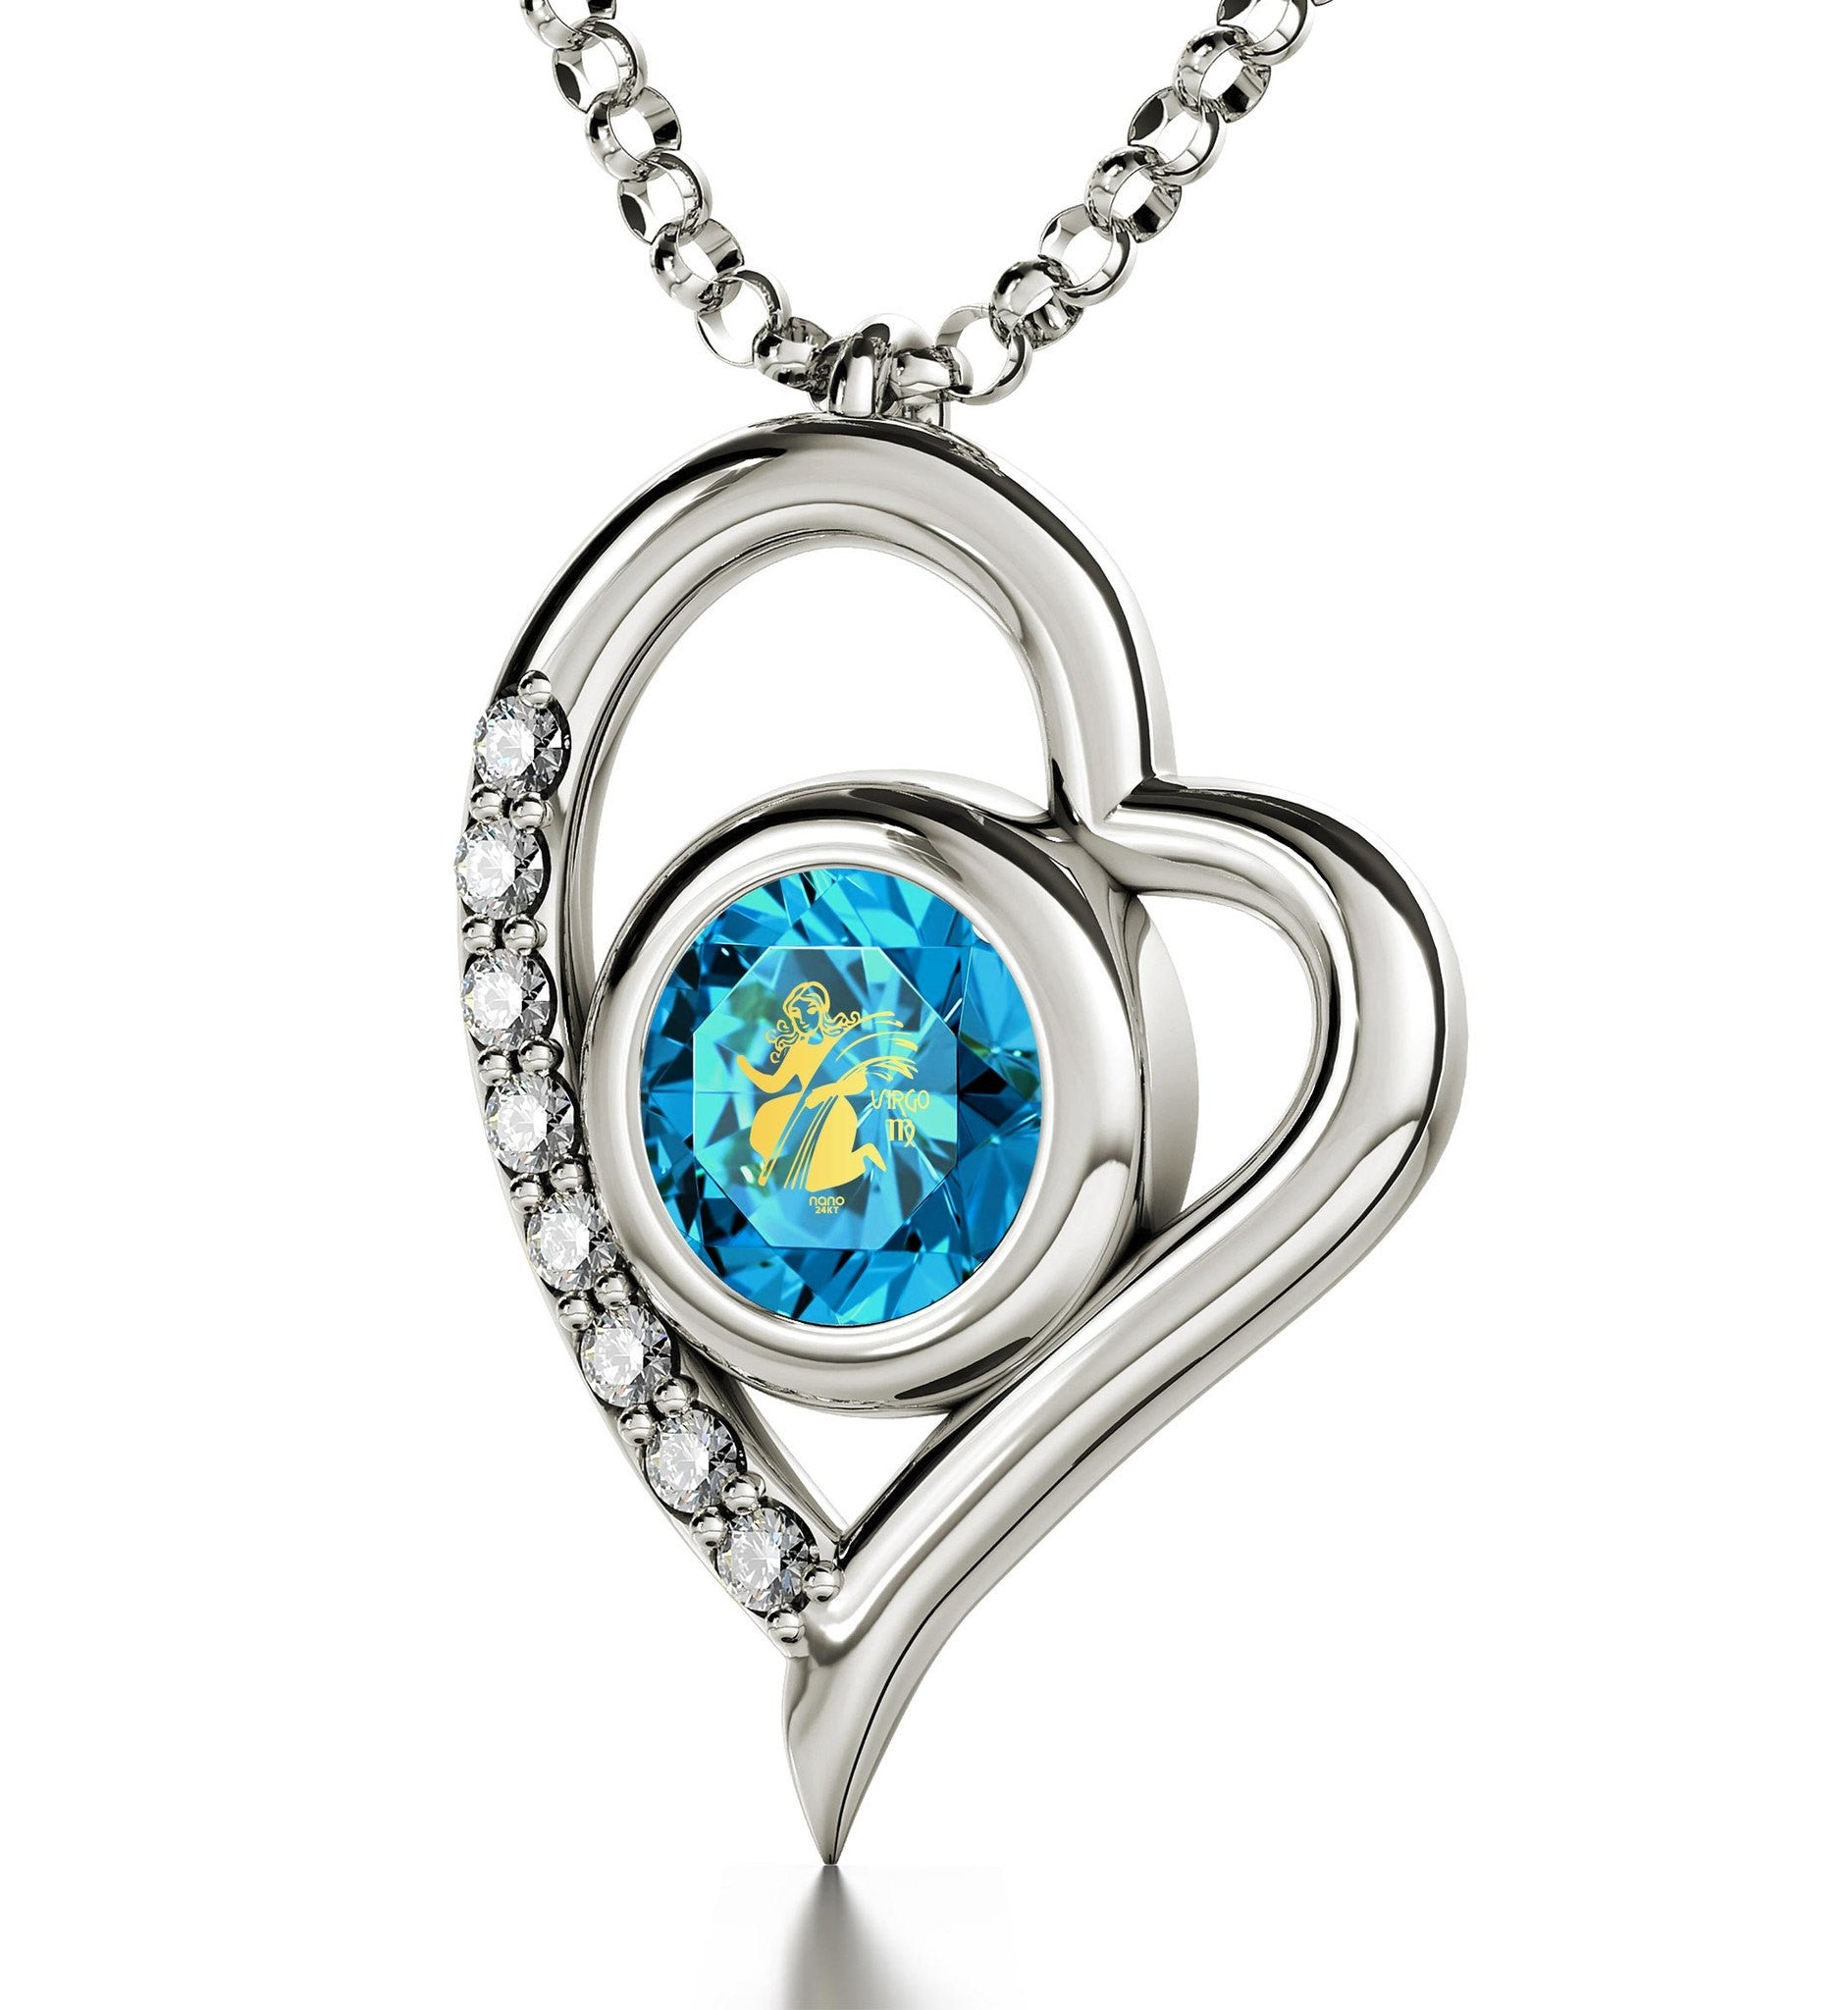 """Virgo Jewelry: Heart Necklaces for Women, Top Gifts for Wife, Christmas Ideas for Girlfriend, Nano Jewelry"""